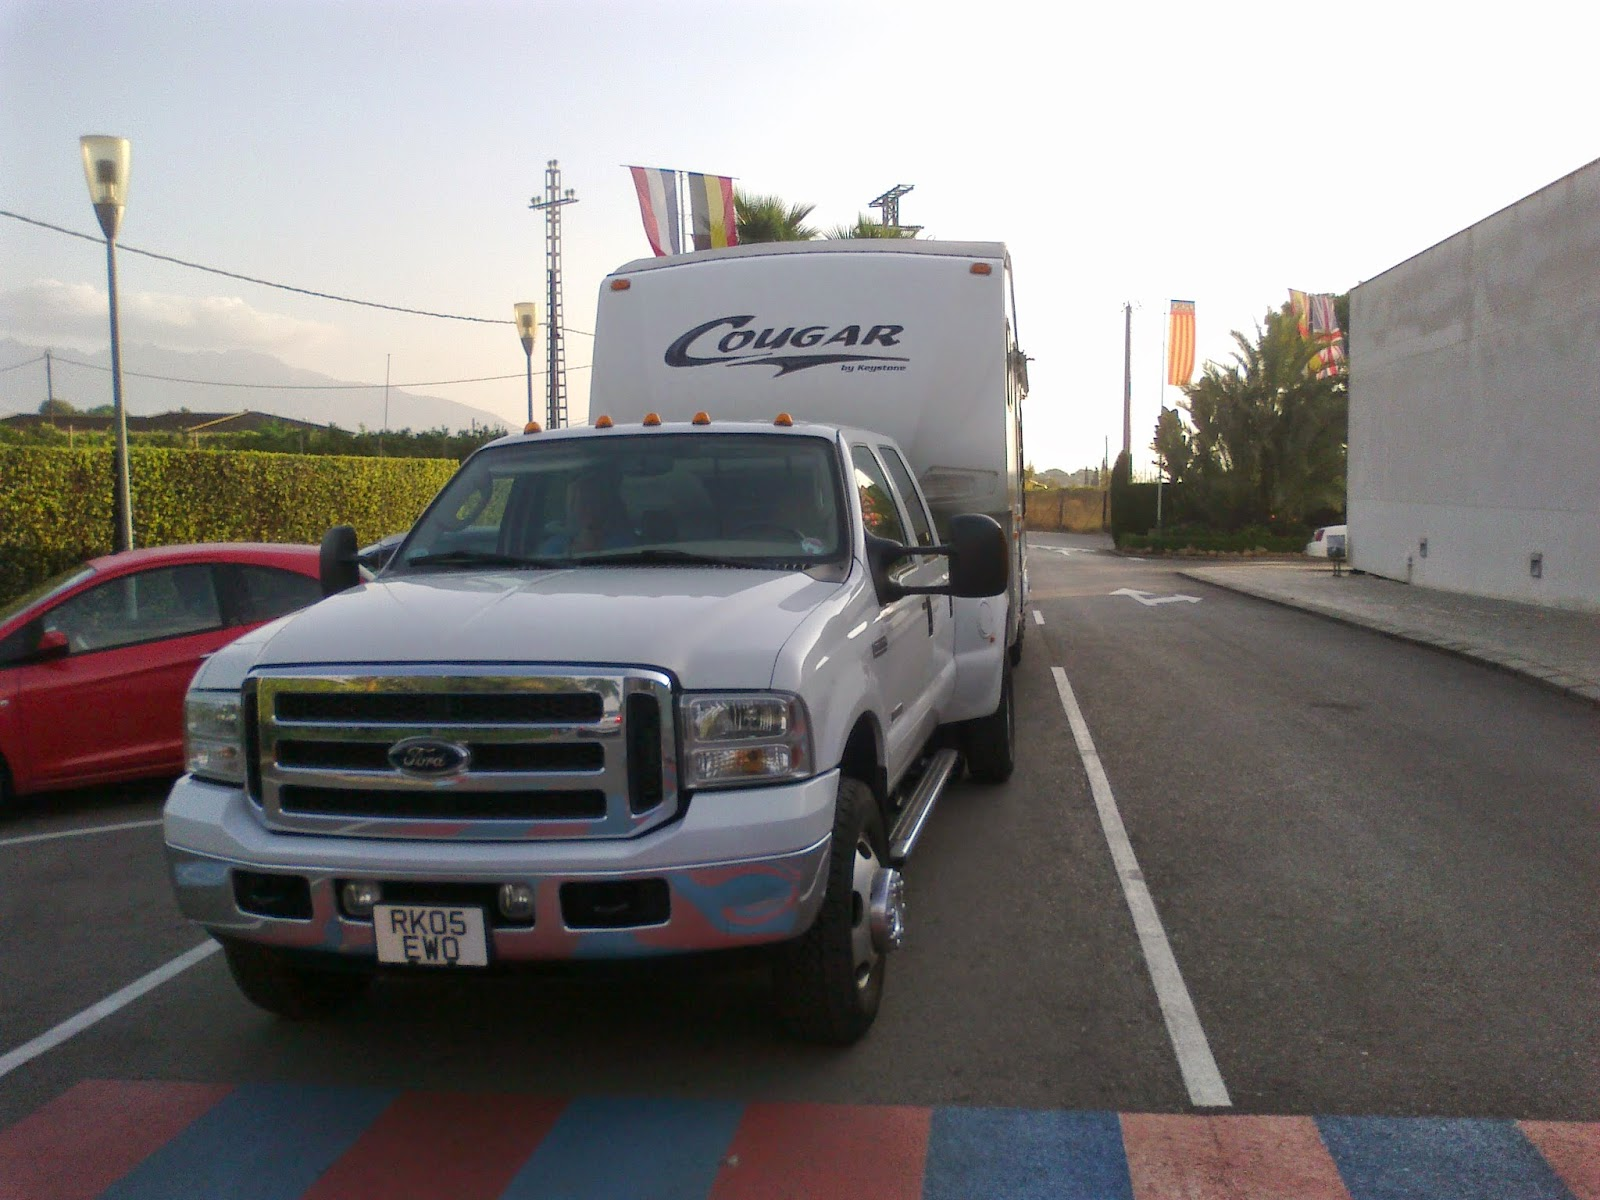 5th wheel towing transport and delivery, UK - Spain